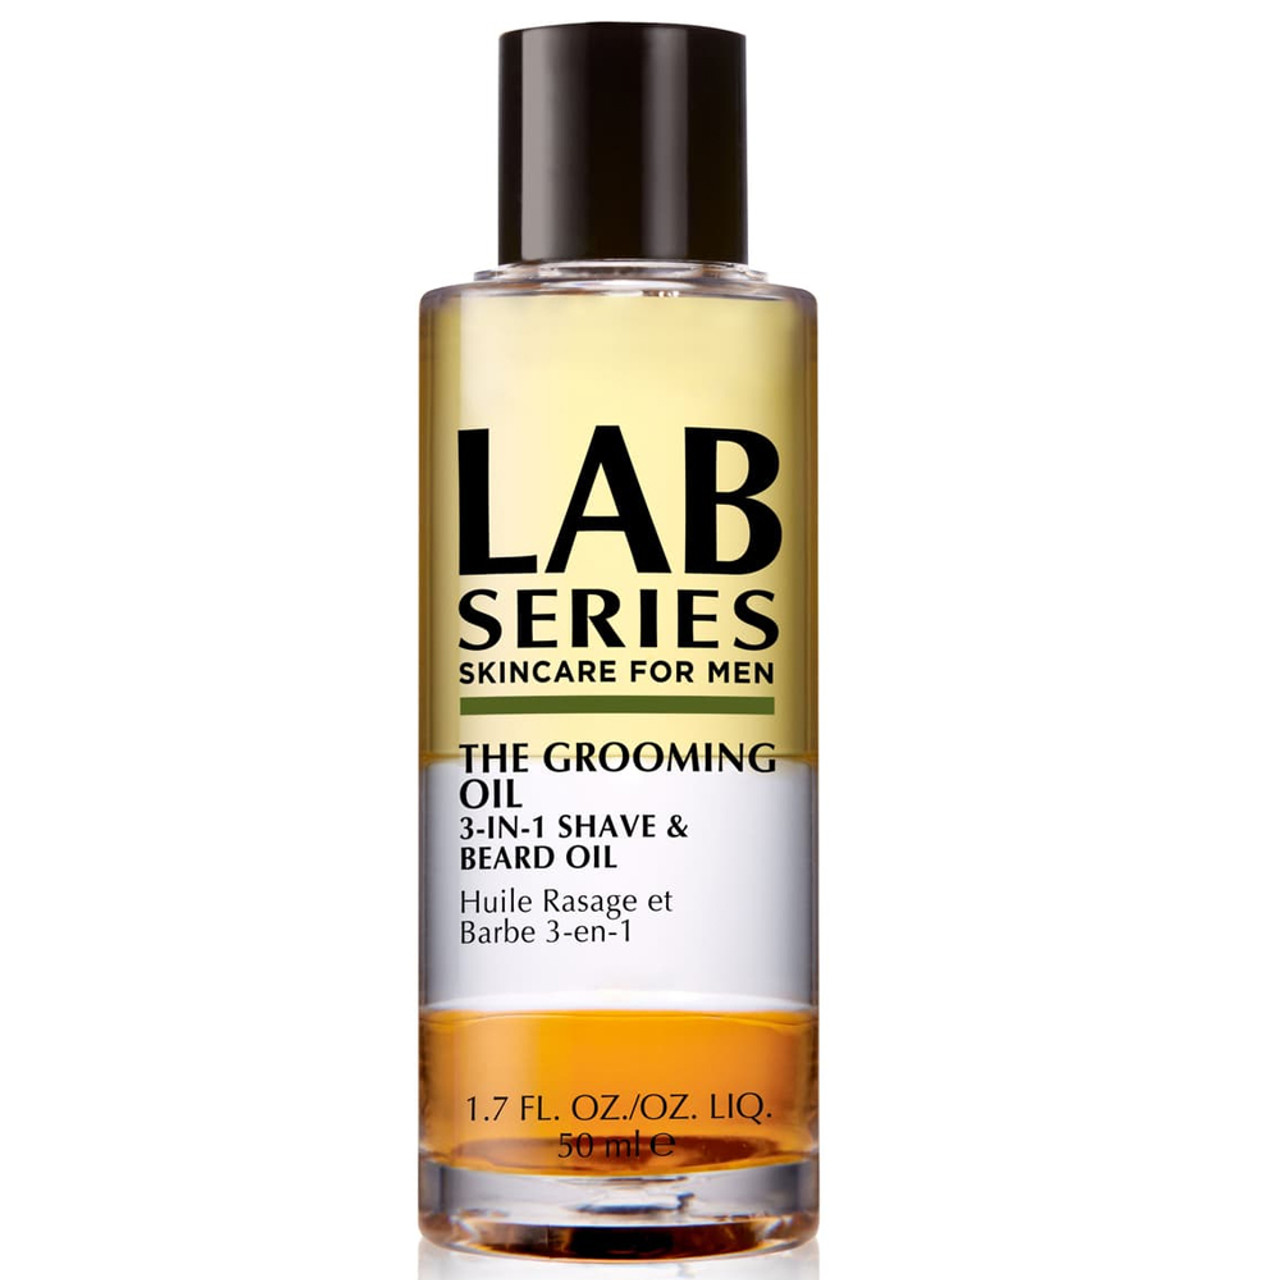 Lab Series The Grooming Oil 3-In-1 Shave & Beard Oil BeautifiedYou.com